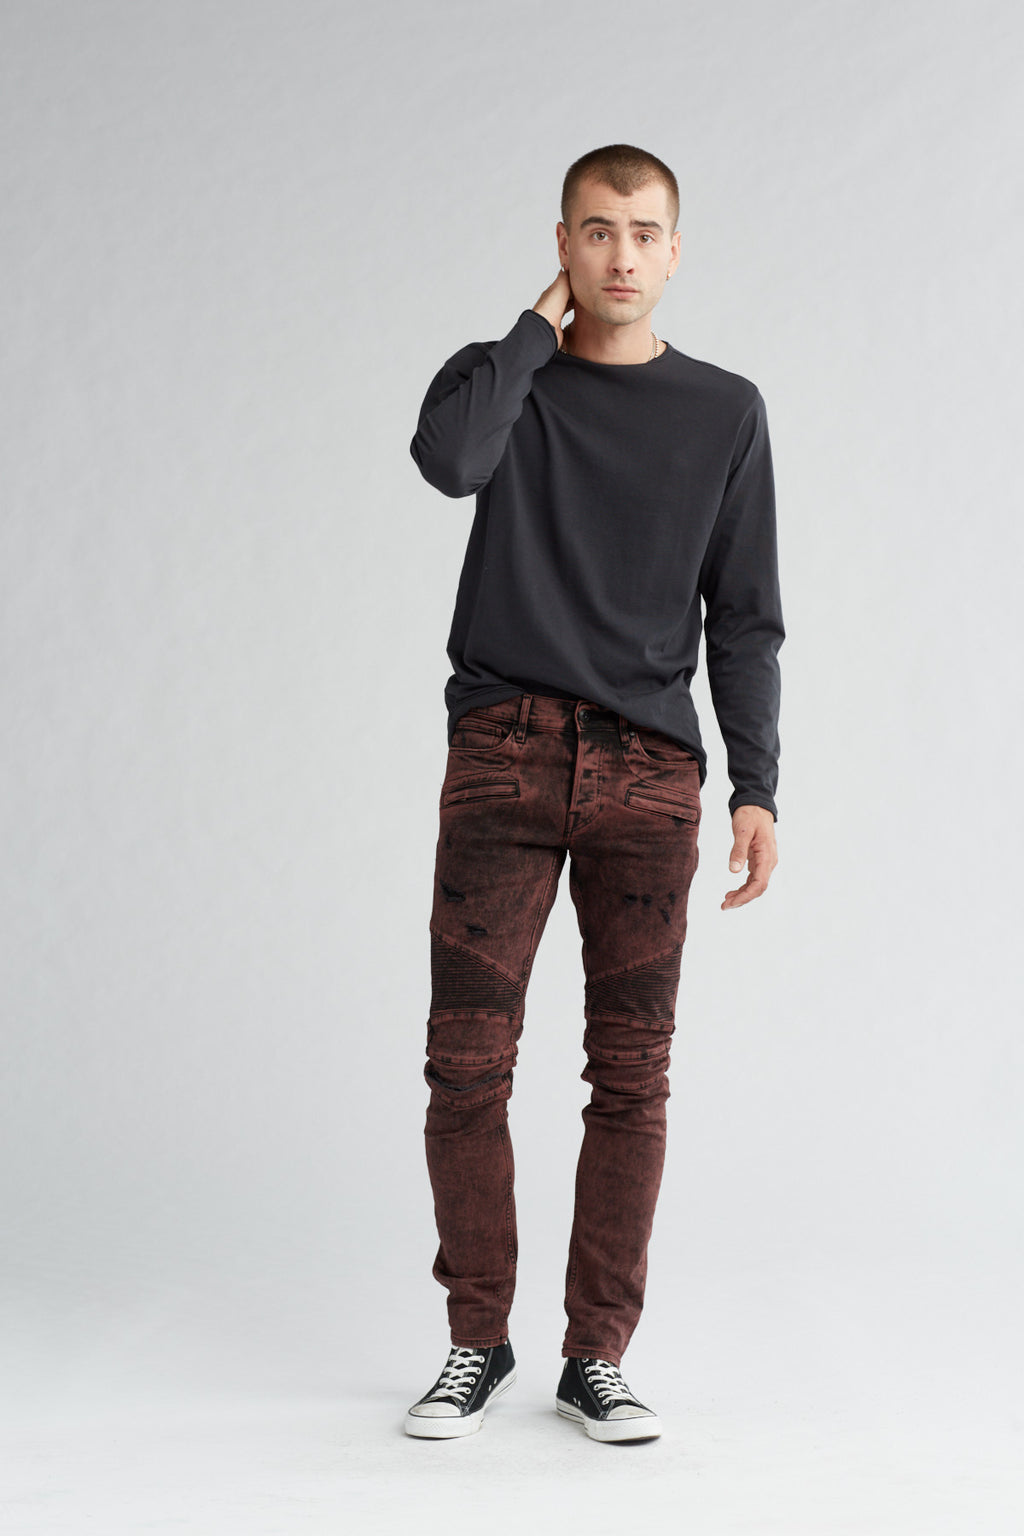 BLINDER BIKER SKINNY MOTO JEAN - FADED OX BLOOD - Image 1